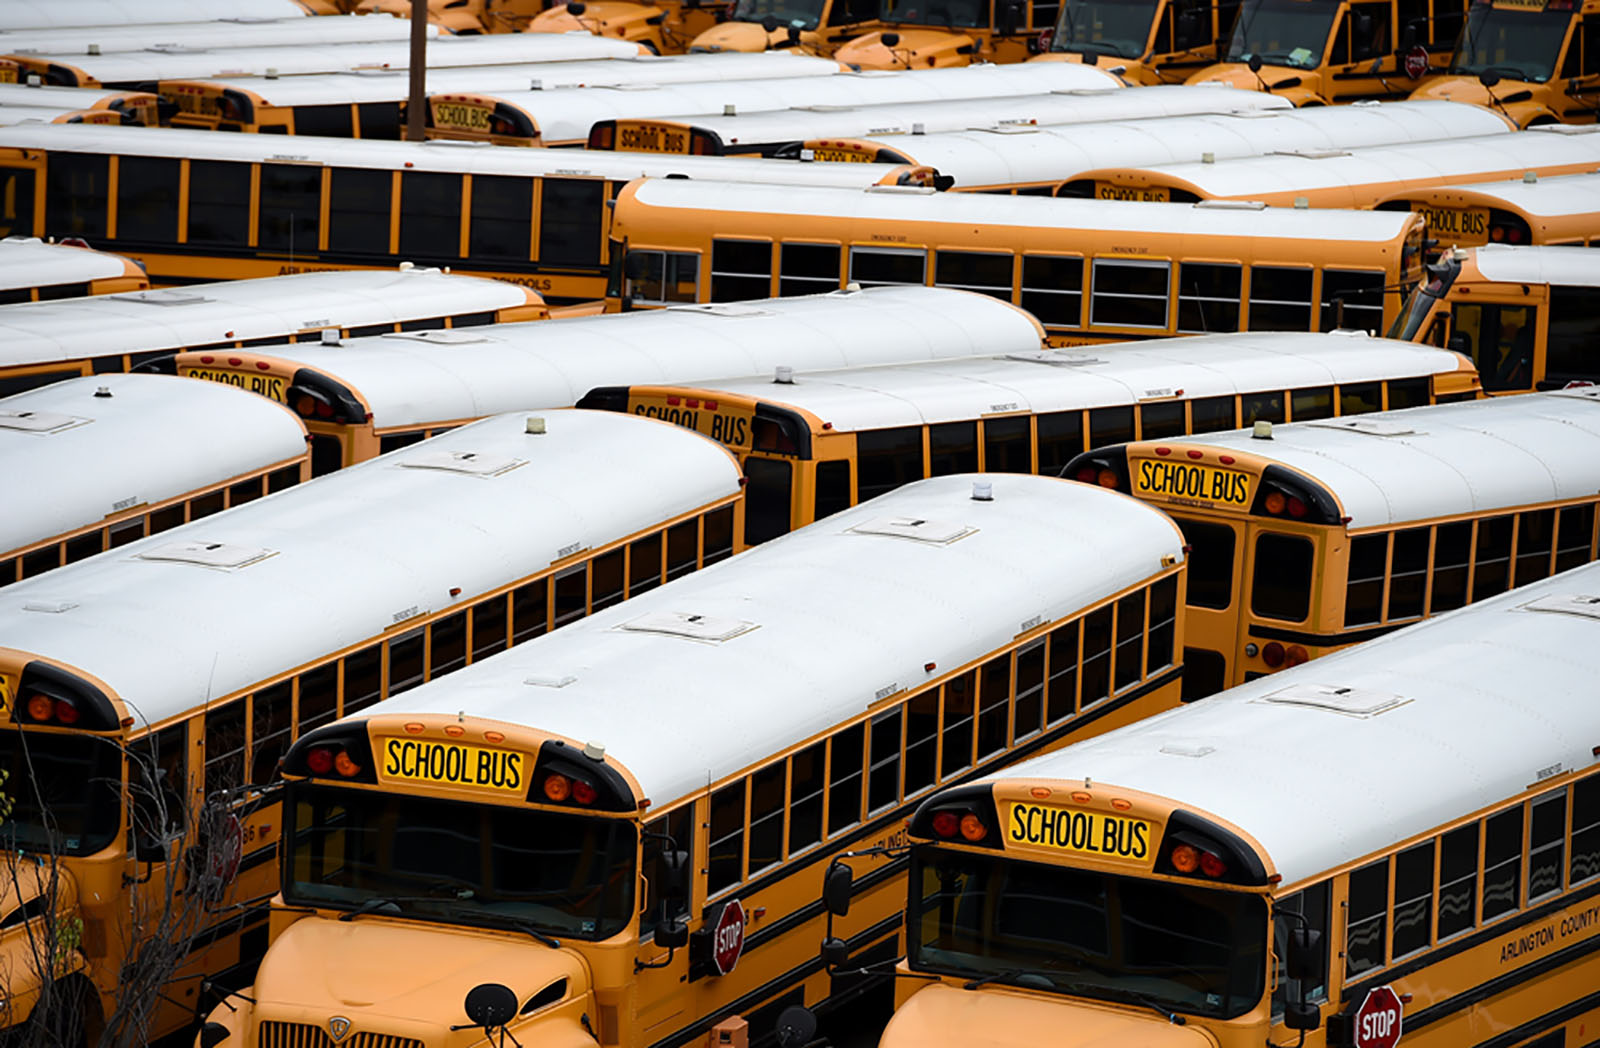 About 100 school buses are parked at the Arlington County Bus Depot, in response to the coronavirus outbreak on March 31, 2020 in Arlington, Virginia.